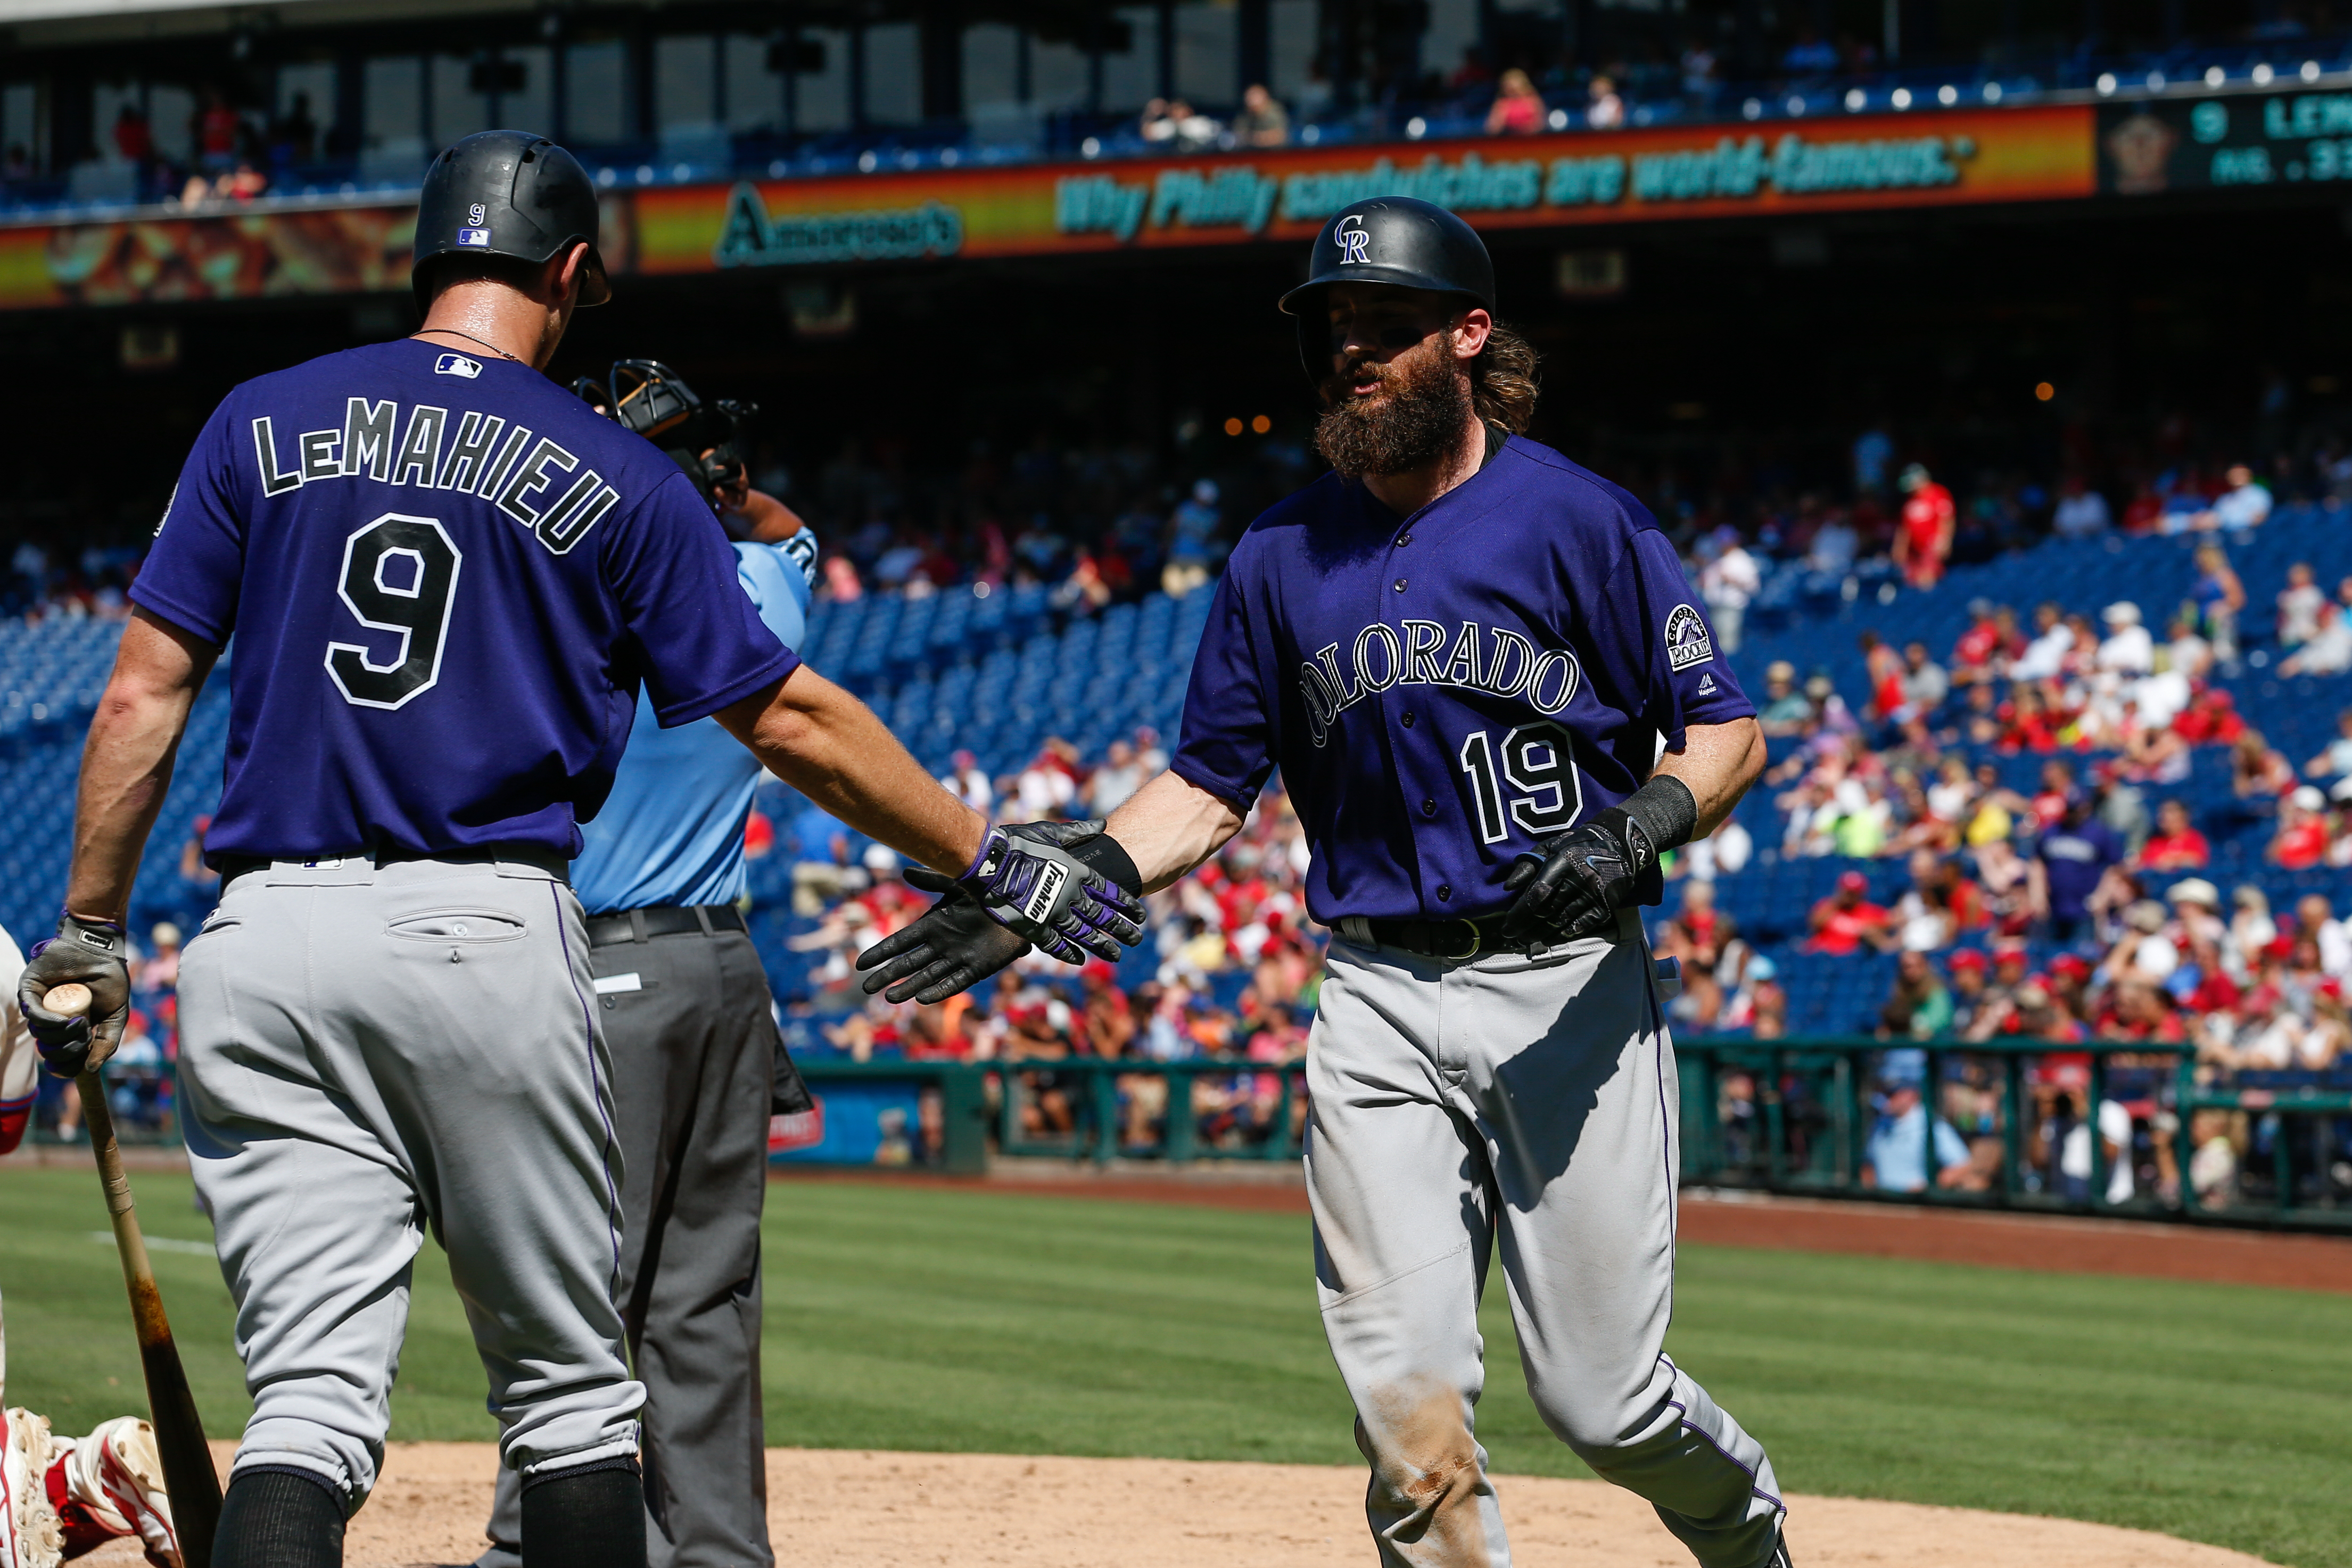 Charlie Blackmon #19 of the Colorado Rockies is congratulated by DJ LeMahieu #9 after Blackmon hit a solo home run in the fifth inning of the game against the Philadelphia Phillies at Citizens Bank Park on August 14, 2016 in Philadelphia, Pennsylvania. The Phillies won 7-6. (Photo by Brian Garfinkel/Getty Images)